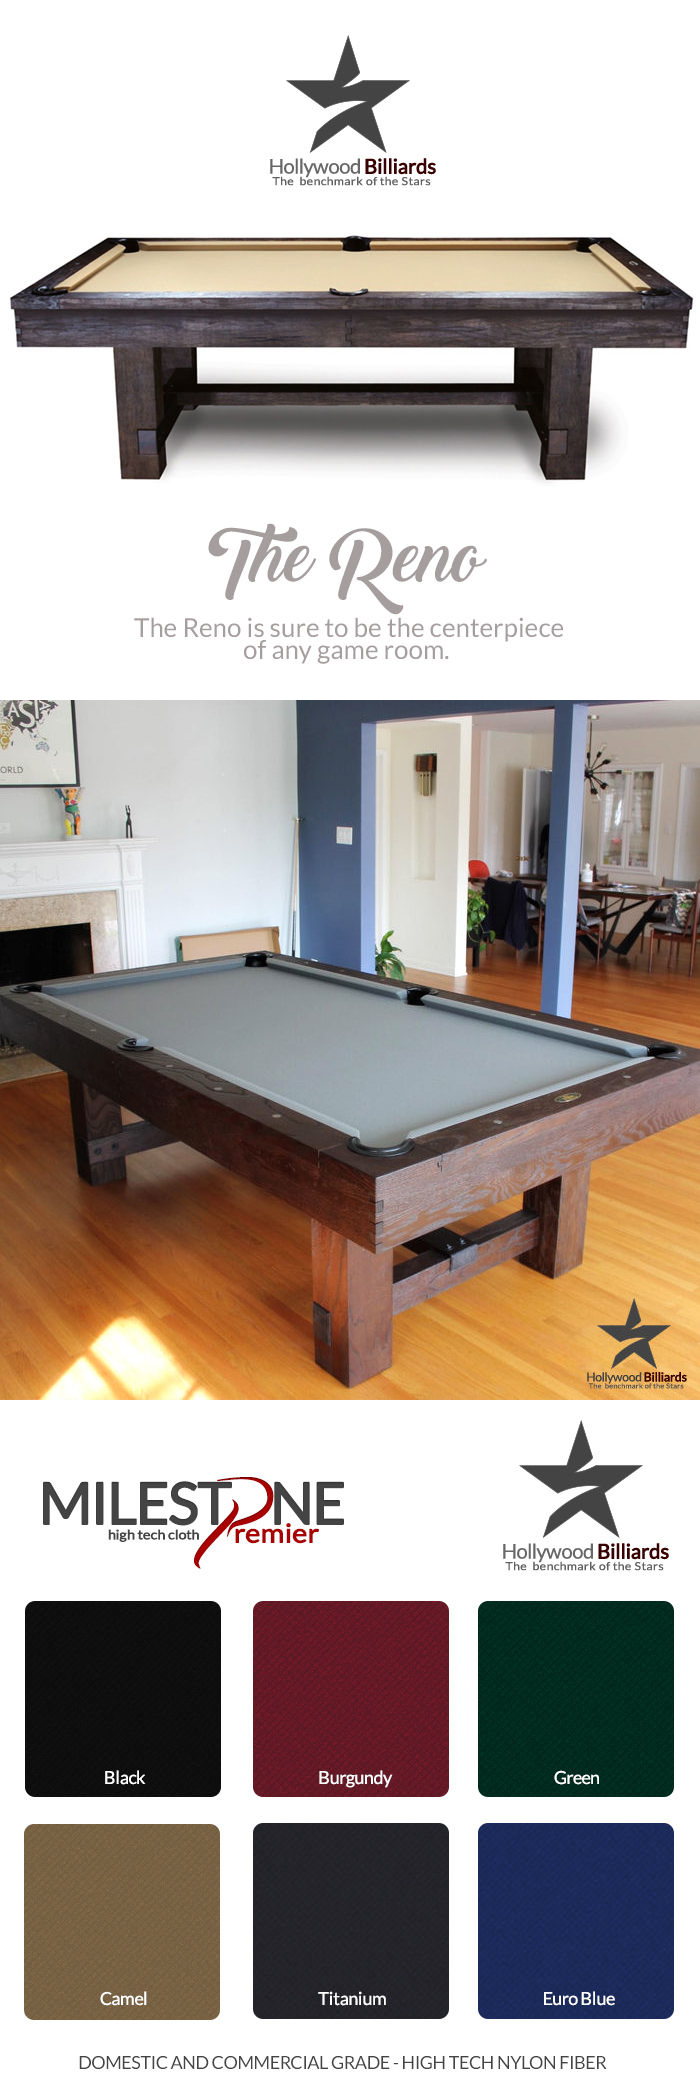 Tables 21213: New 7 And 8 Ft. Reno Pool Tables   Imperial Brand